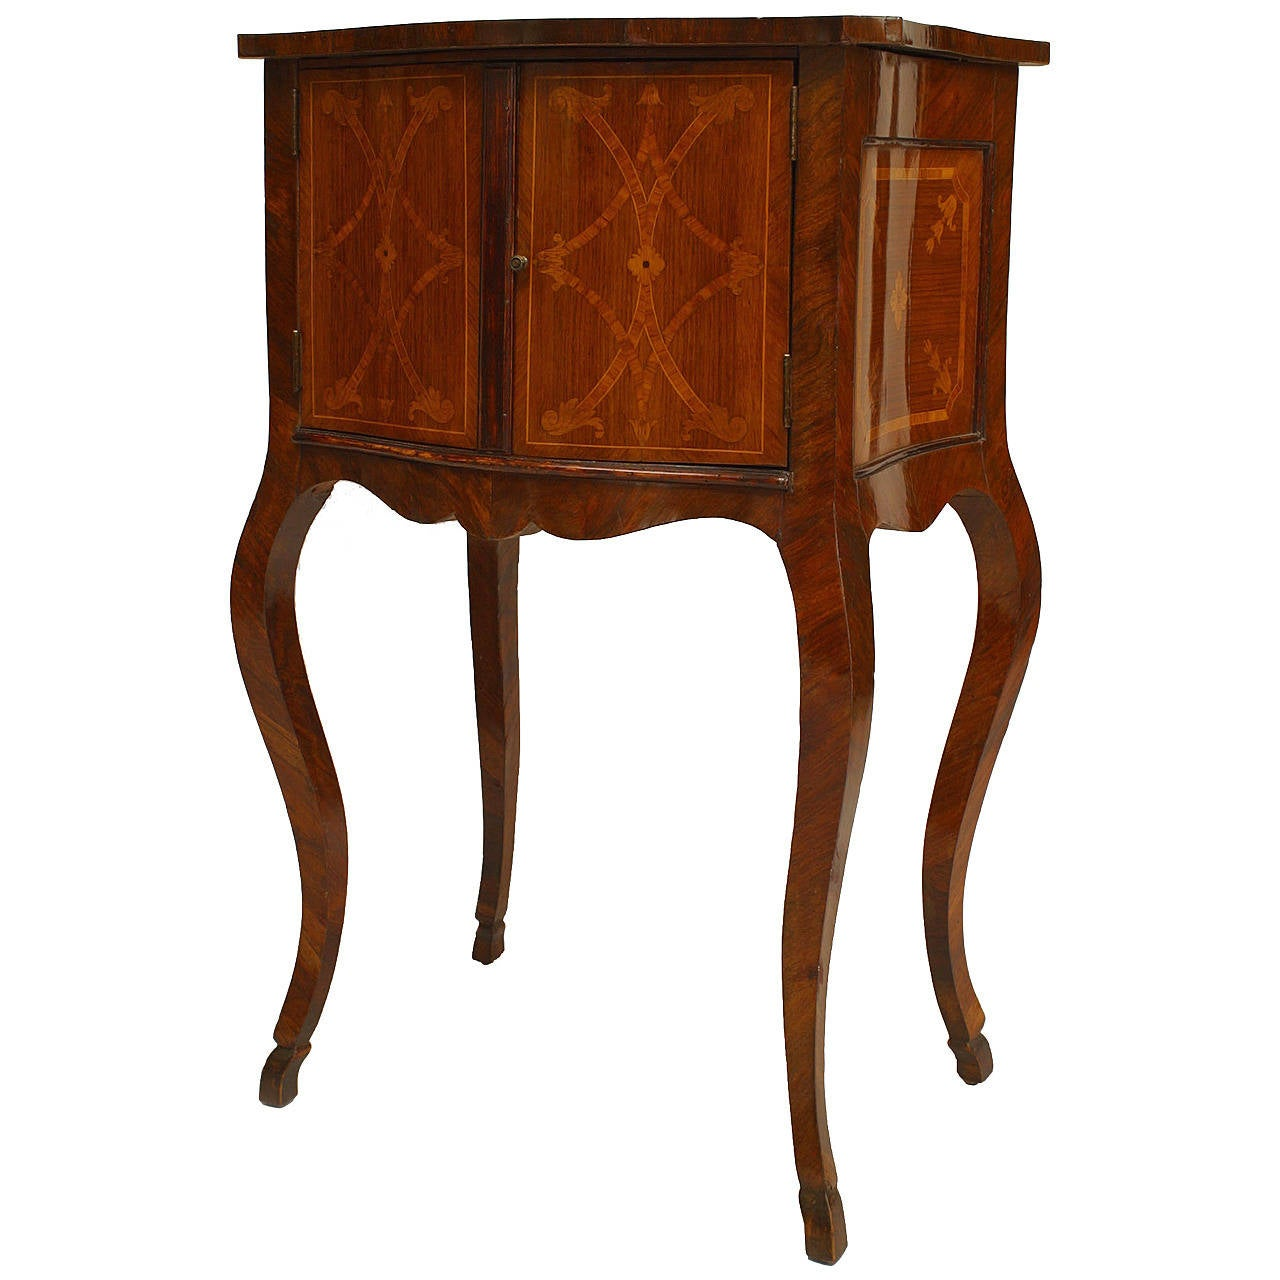 Italian Neoclassical Marquetry Inlaid Walnut Bedside Commode